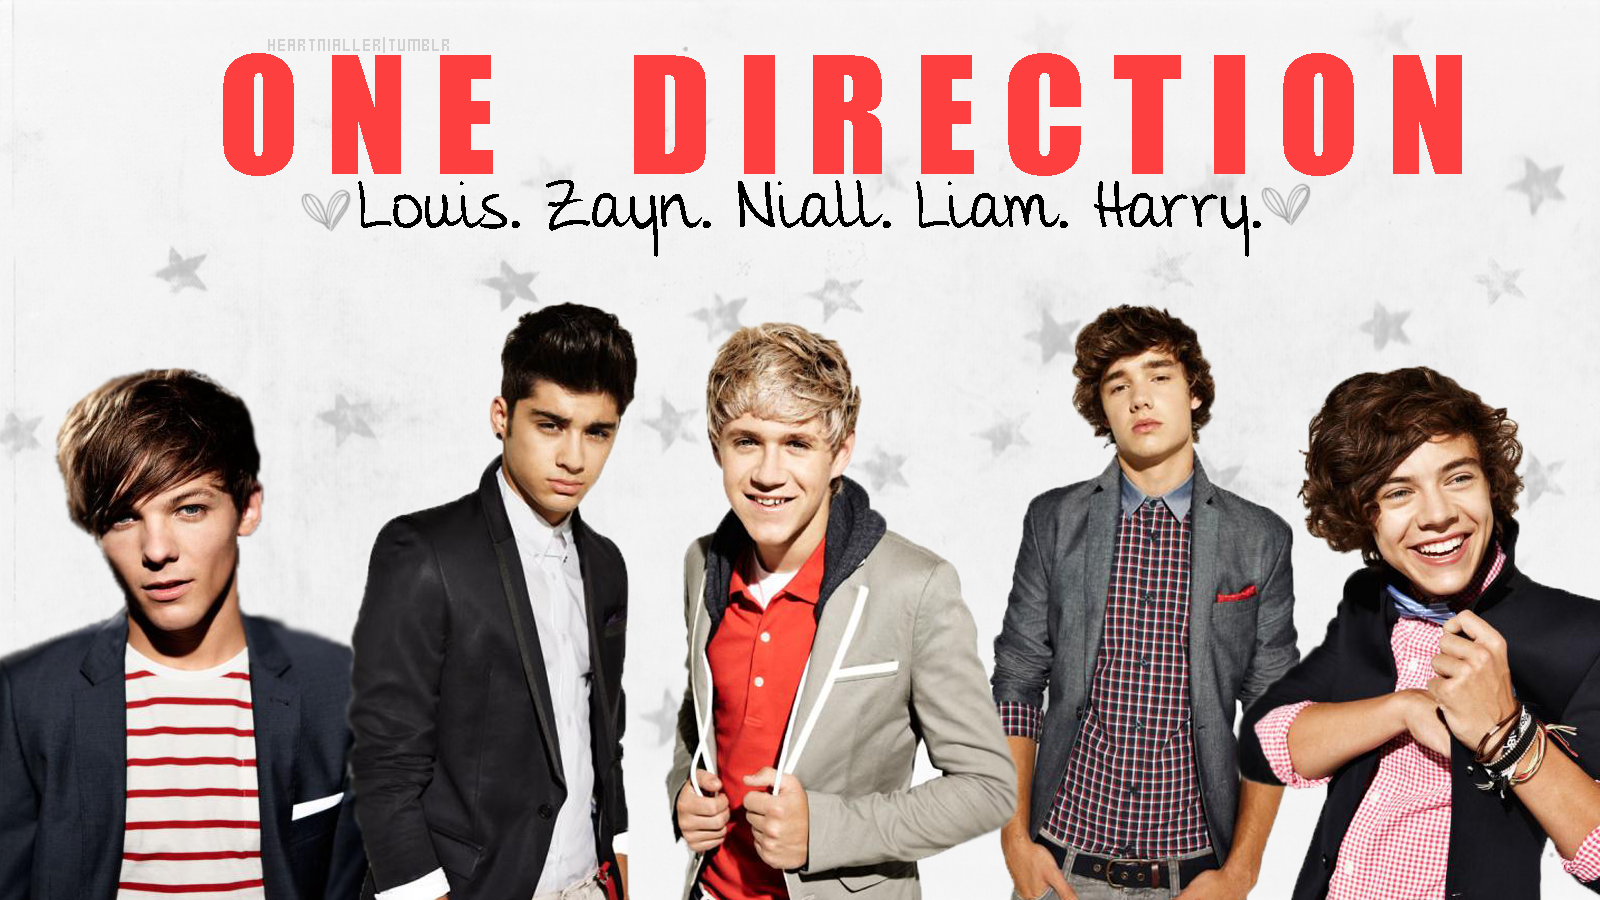 One Direction Wallpaper Band 2014 HD 1600x900